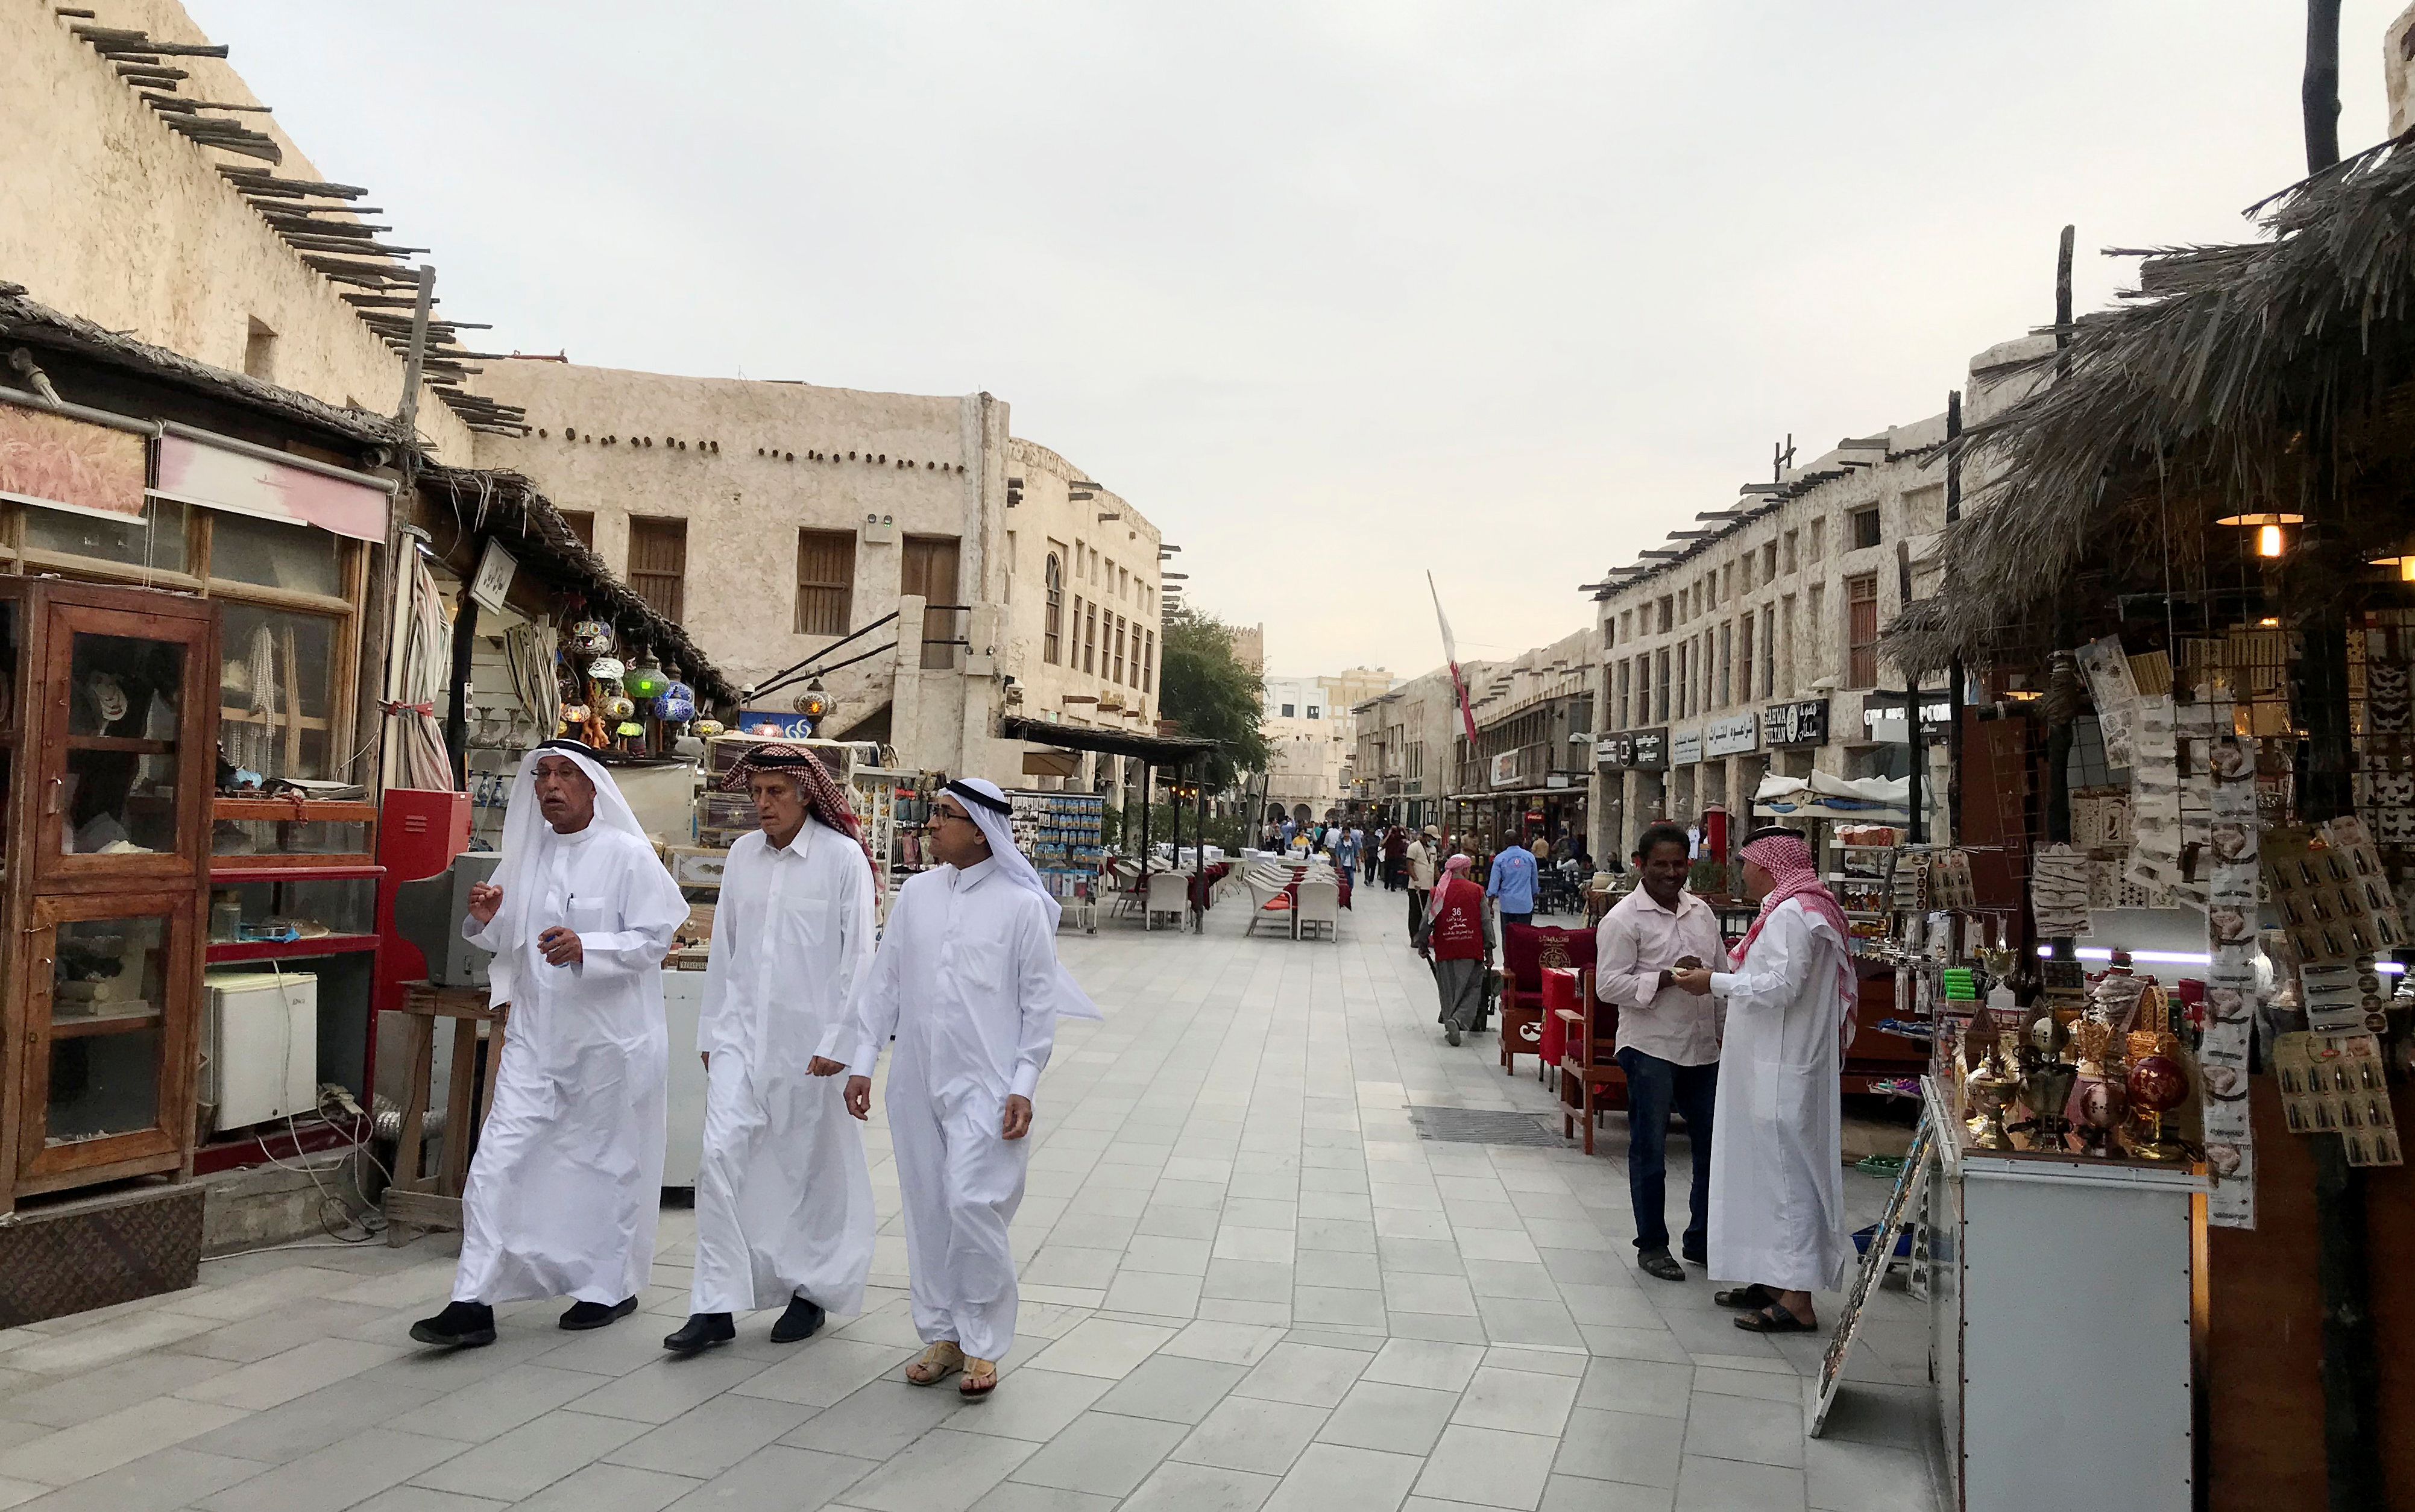 People walk at souq Waqif, following the outbreak of coronavirus, in Doha, Qatar March 12,2020. REUTERS/stringer